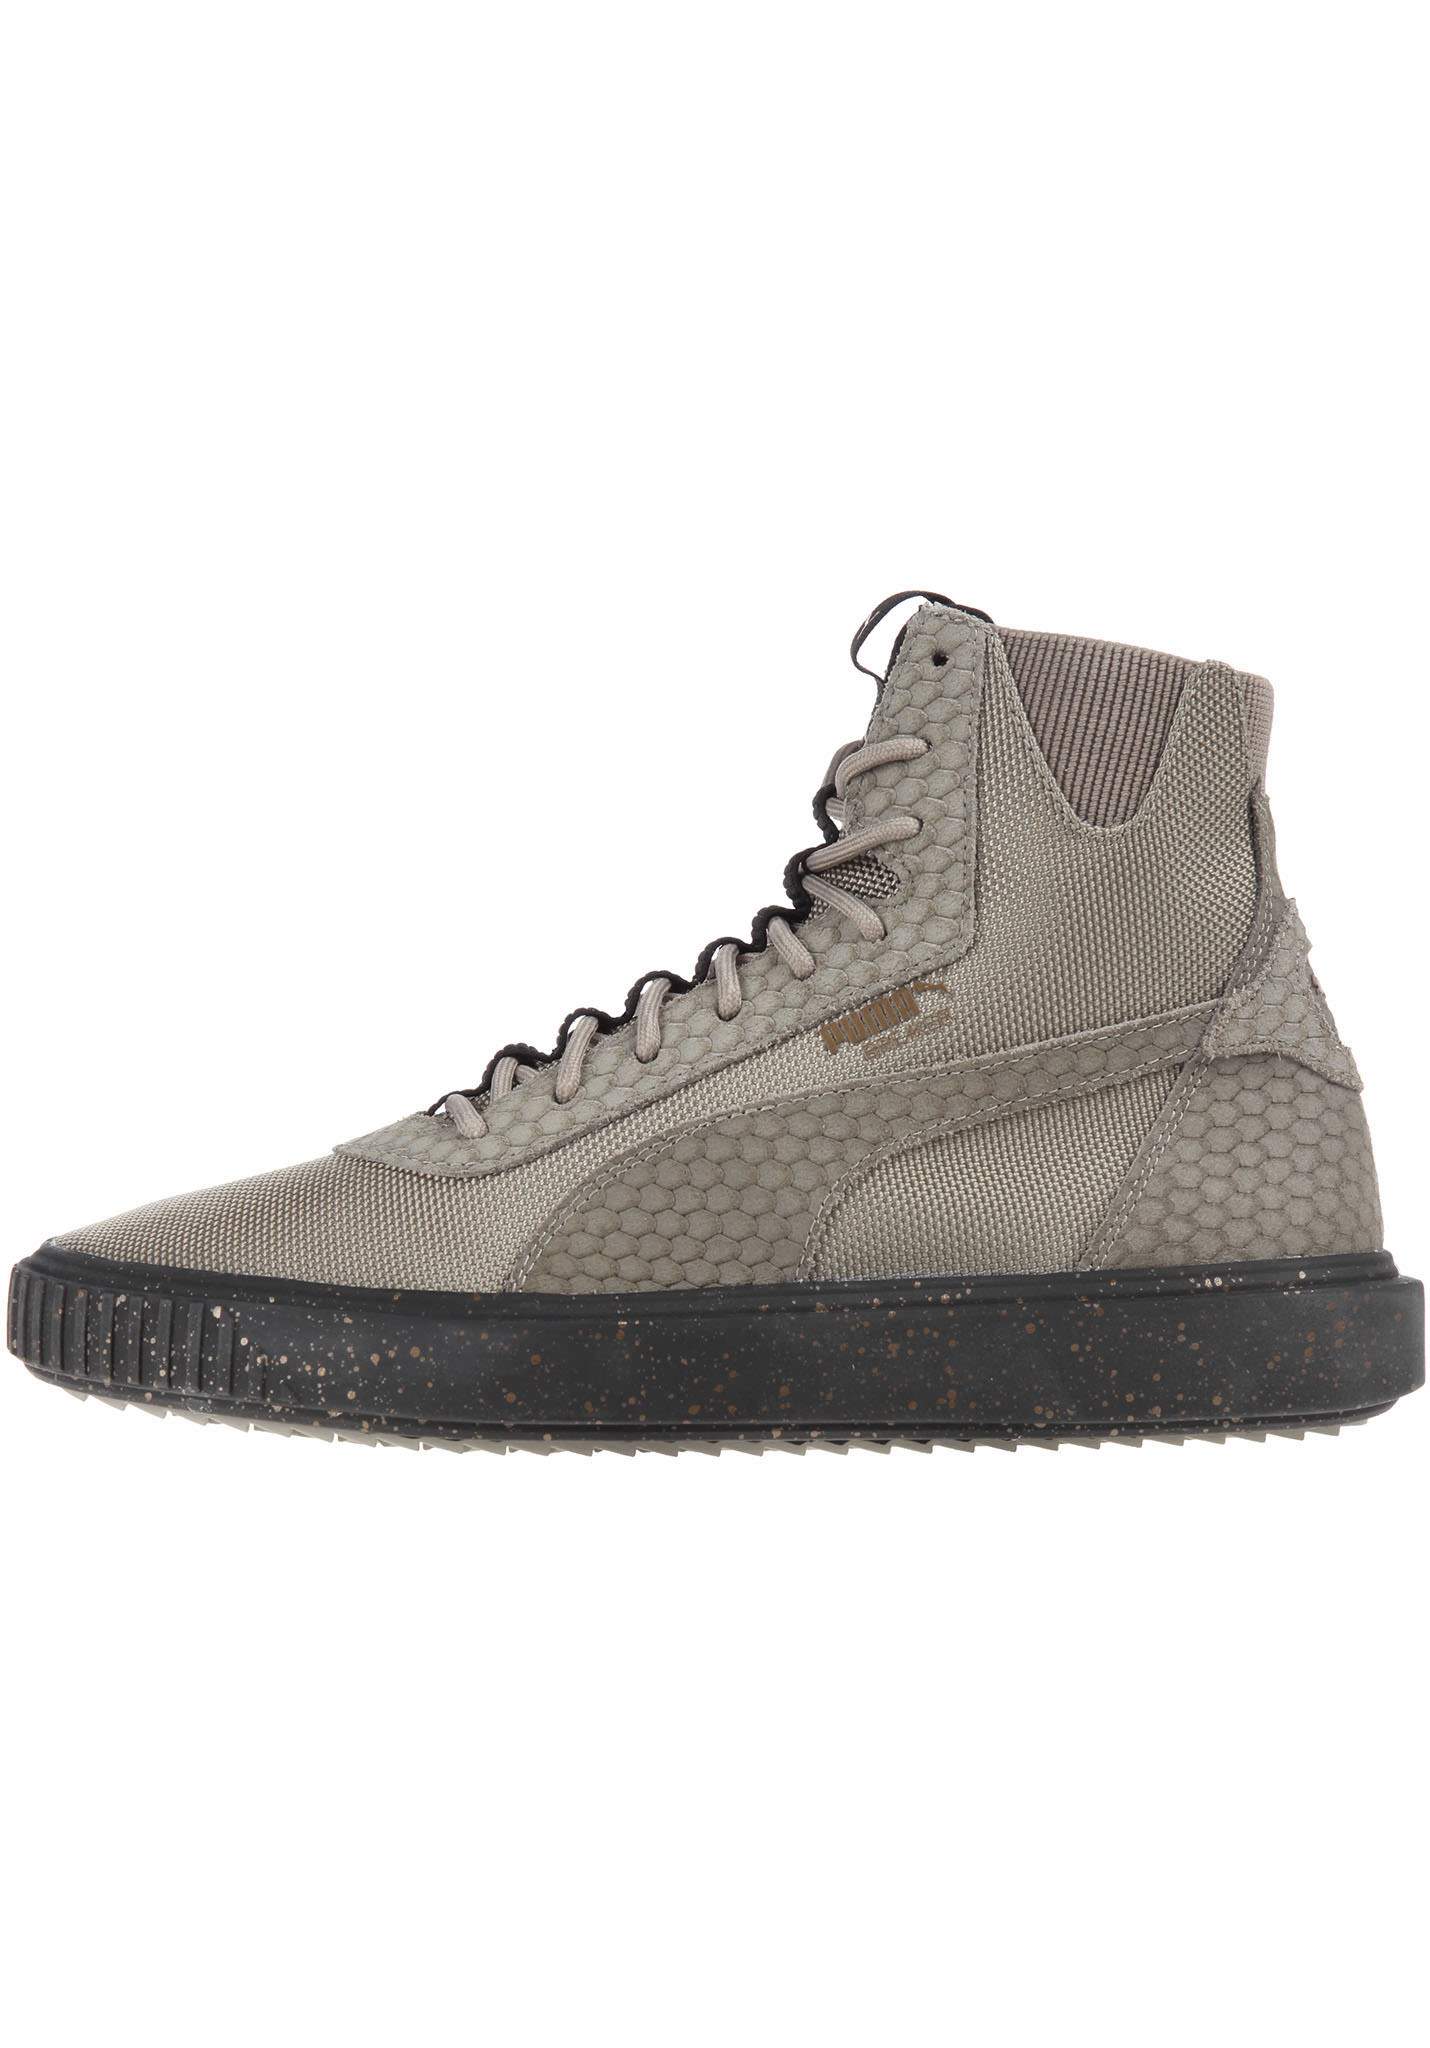 e21557eff3c Puma Breaker Hi Blocked - Sneakers for Men - Grey - Planet Sports